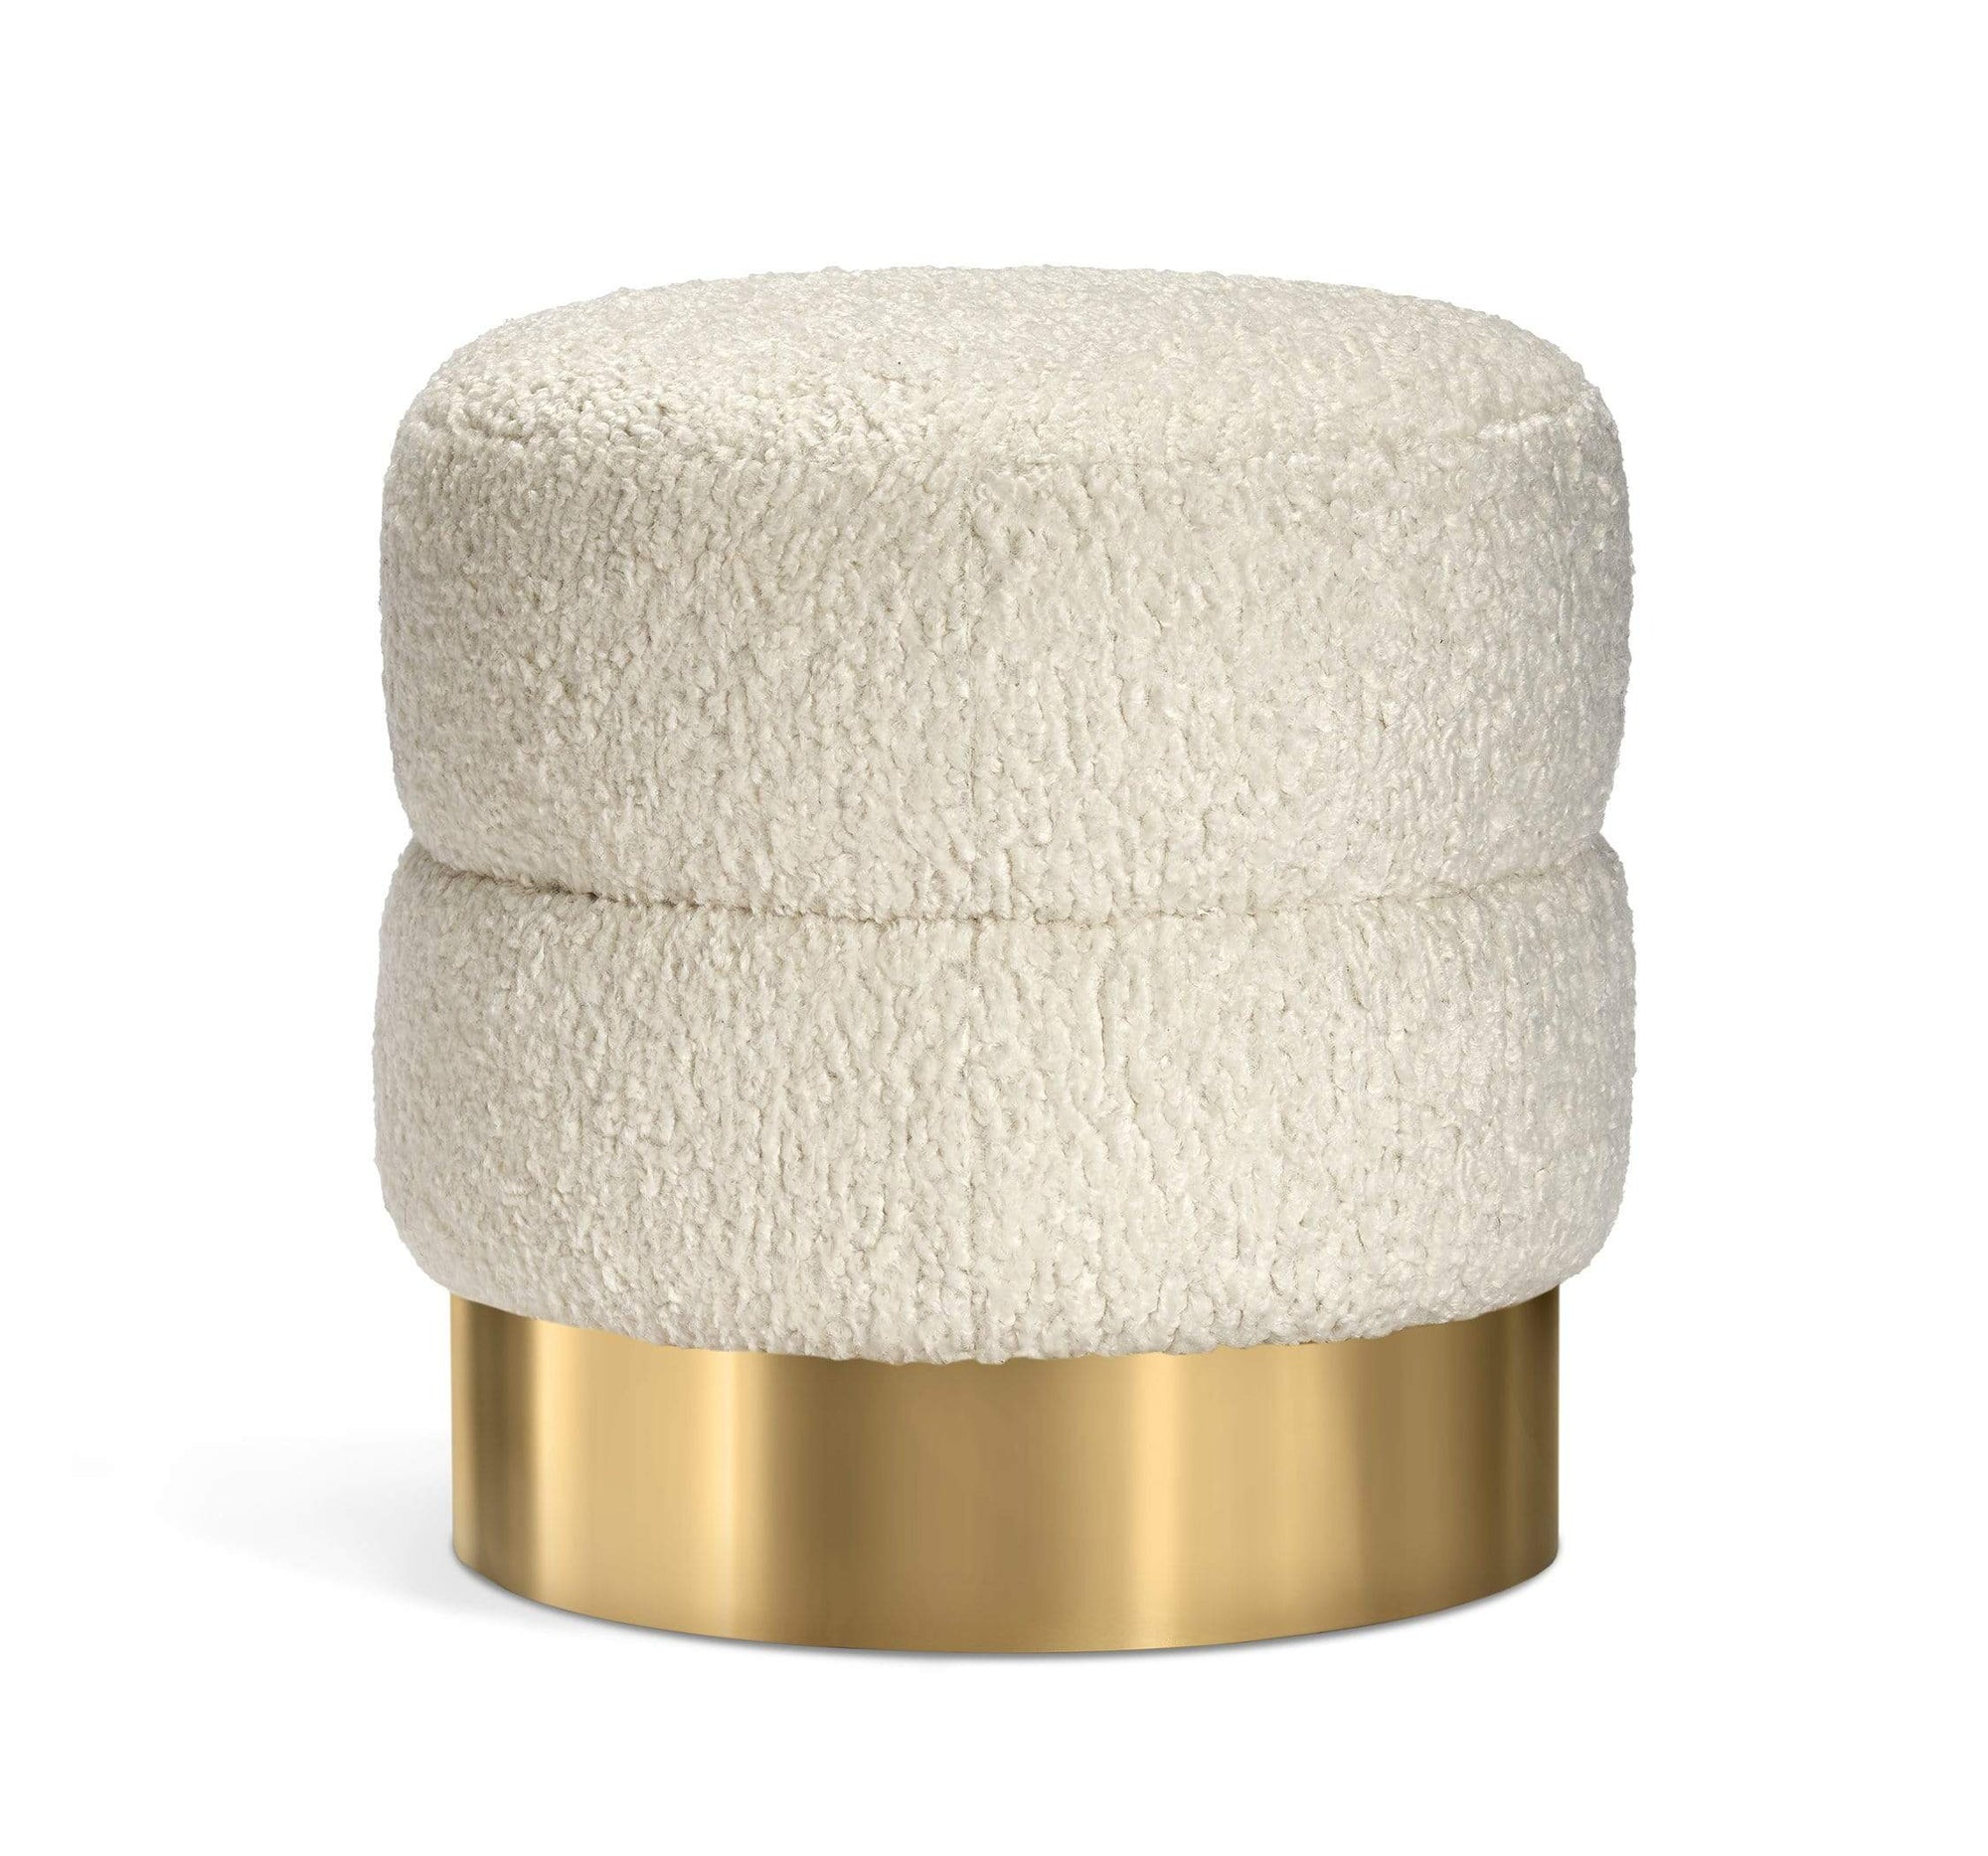 Interlude Home Interlude Home Charlize Stool - Polished Brass & Cream 188168